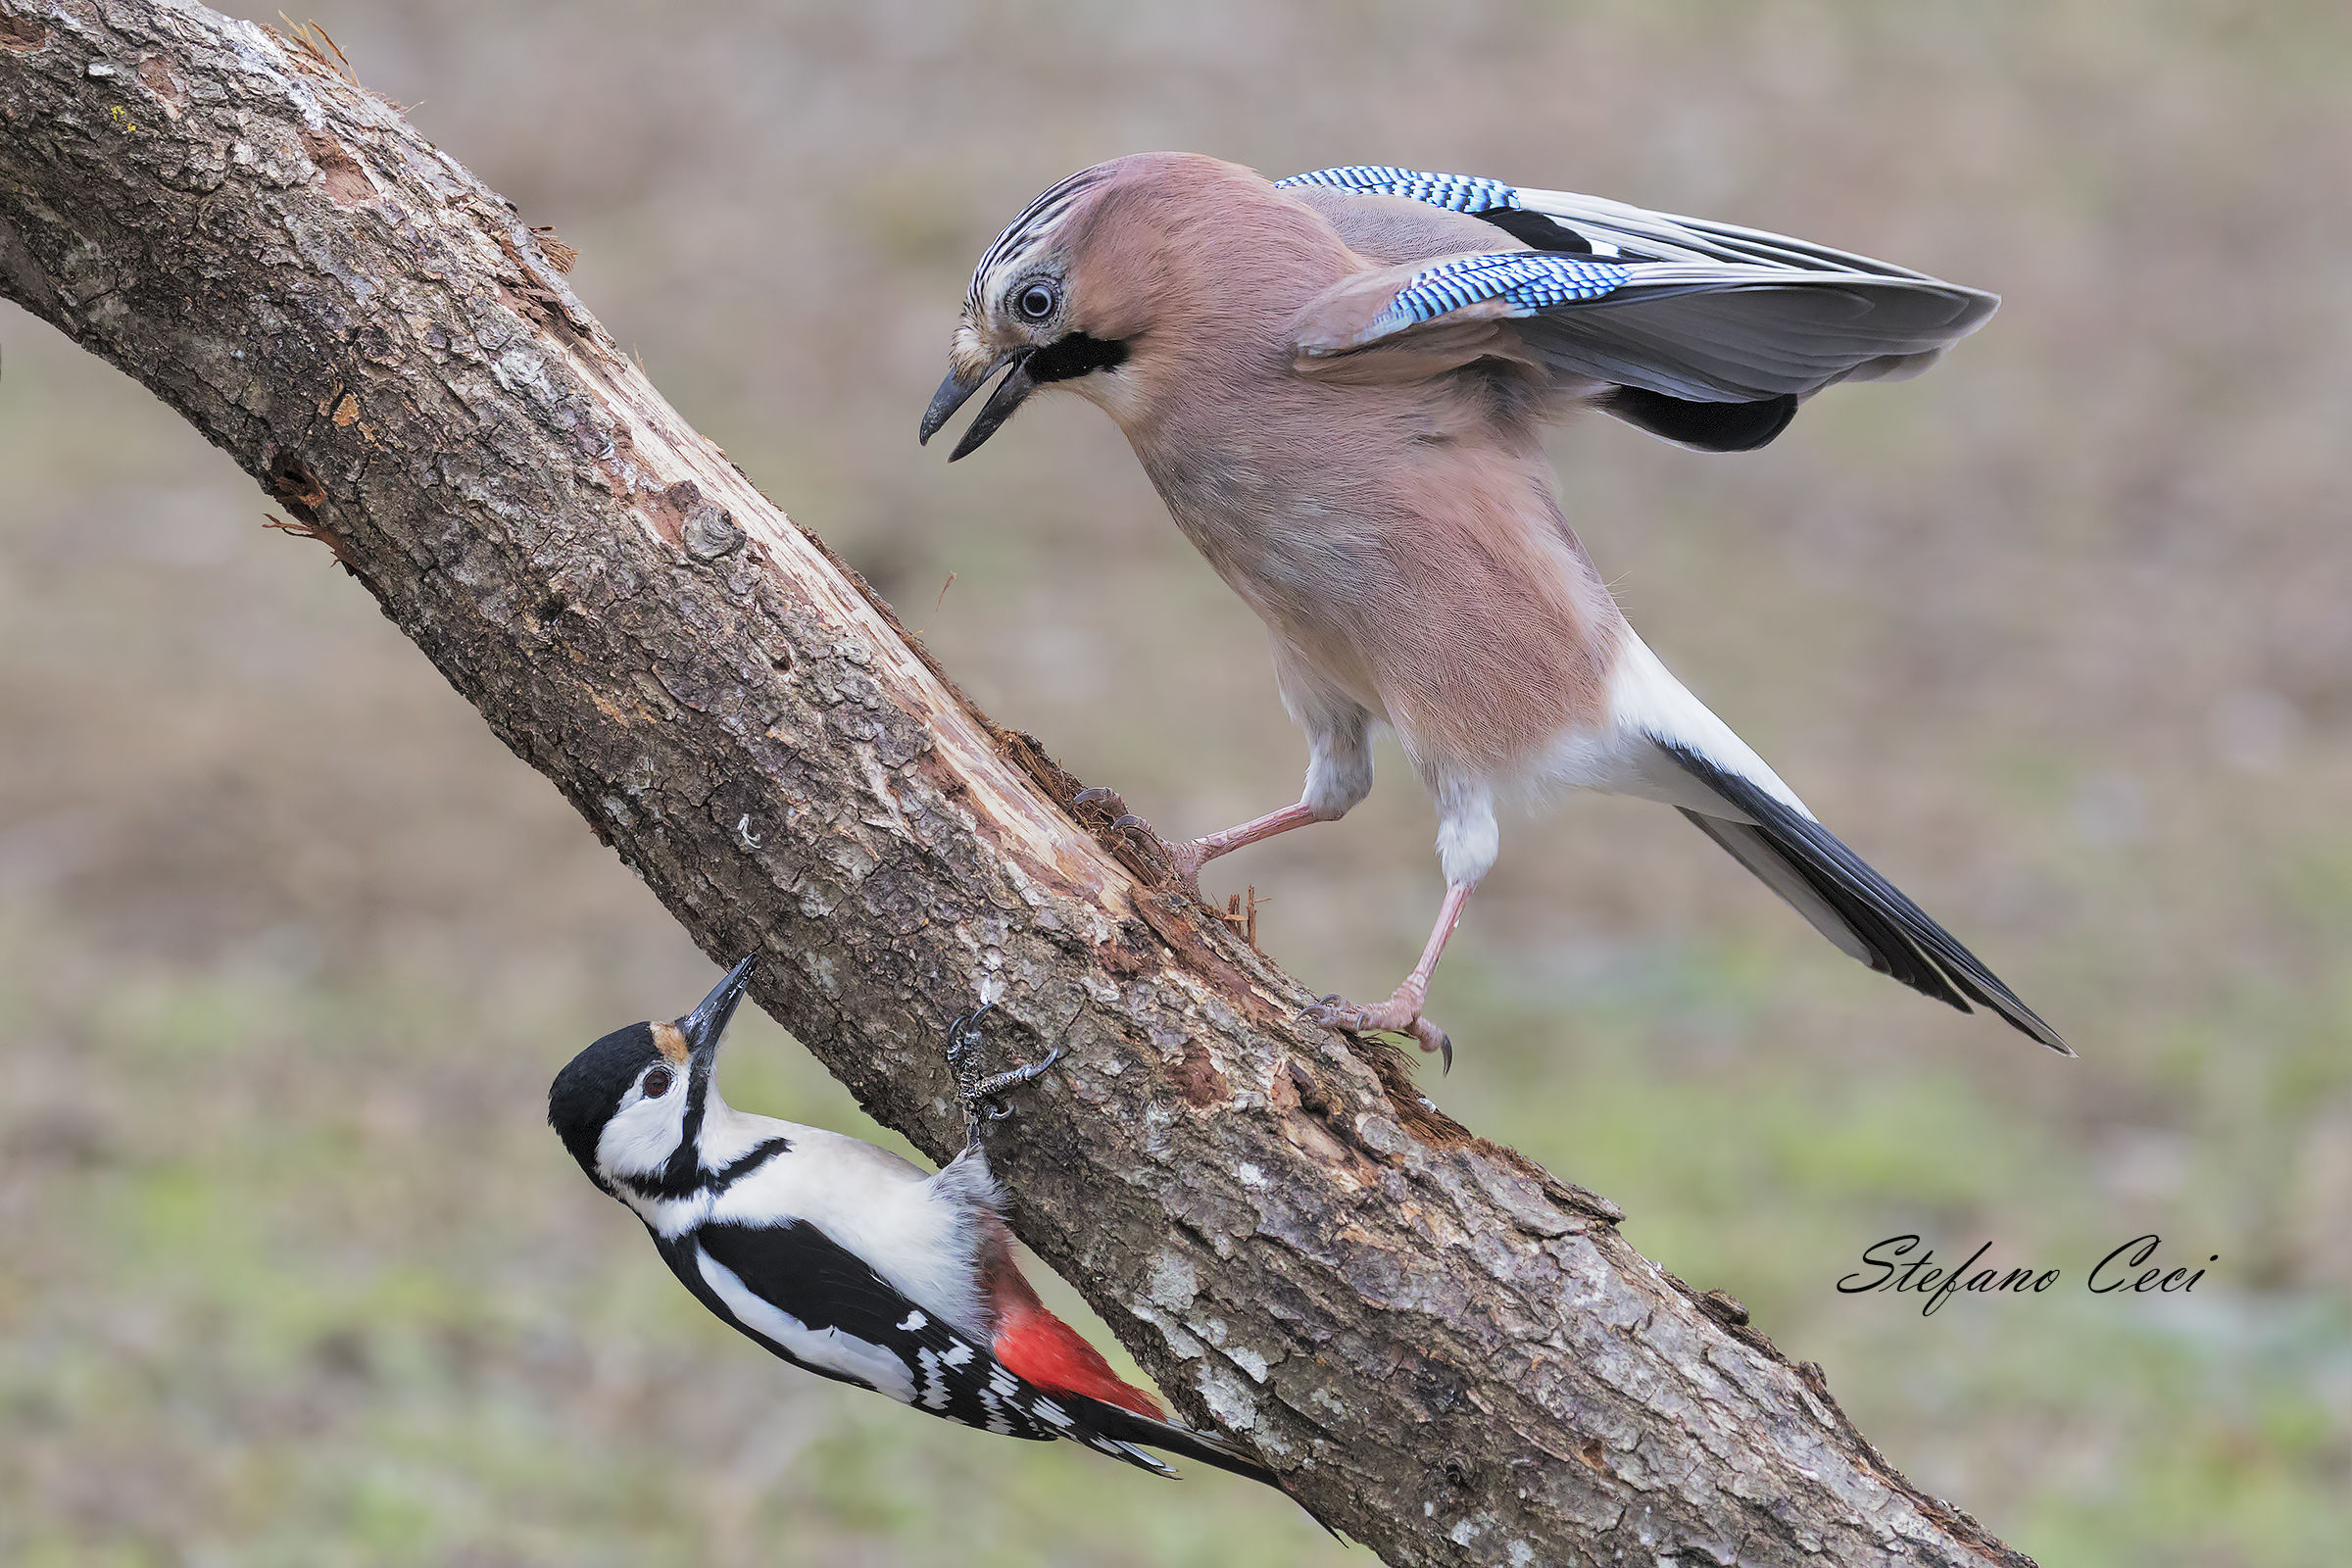 Meeting between the woodpeckers and the Jay...